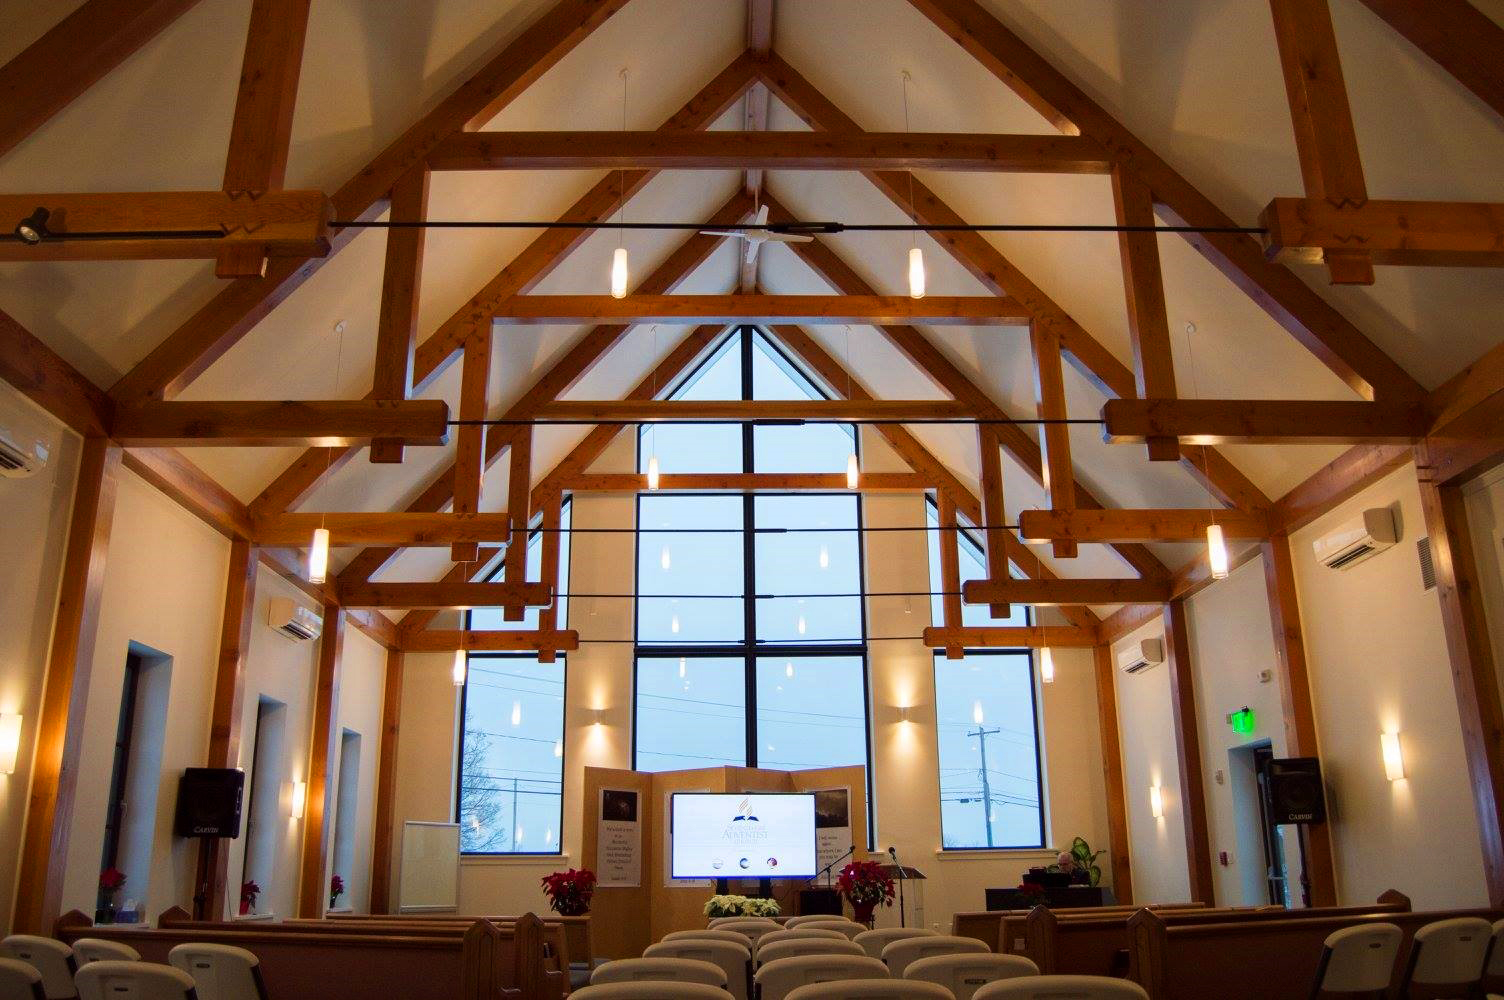 Seventh-day Adventist Church at Kinderhook with INTUS windows,  3rd Annual PHIUS Passive House Projects Competition Commercial Winner